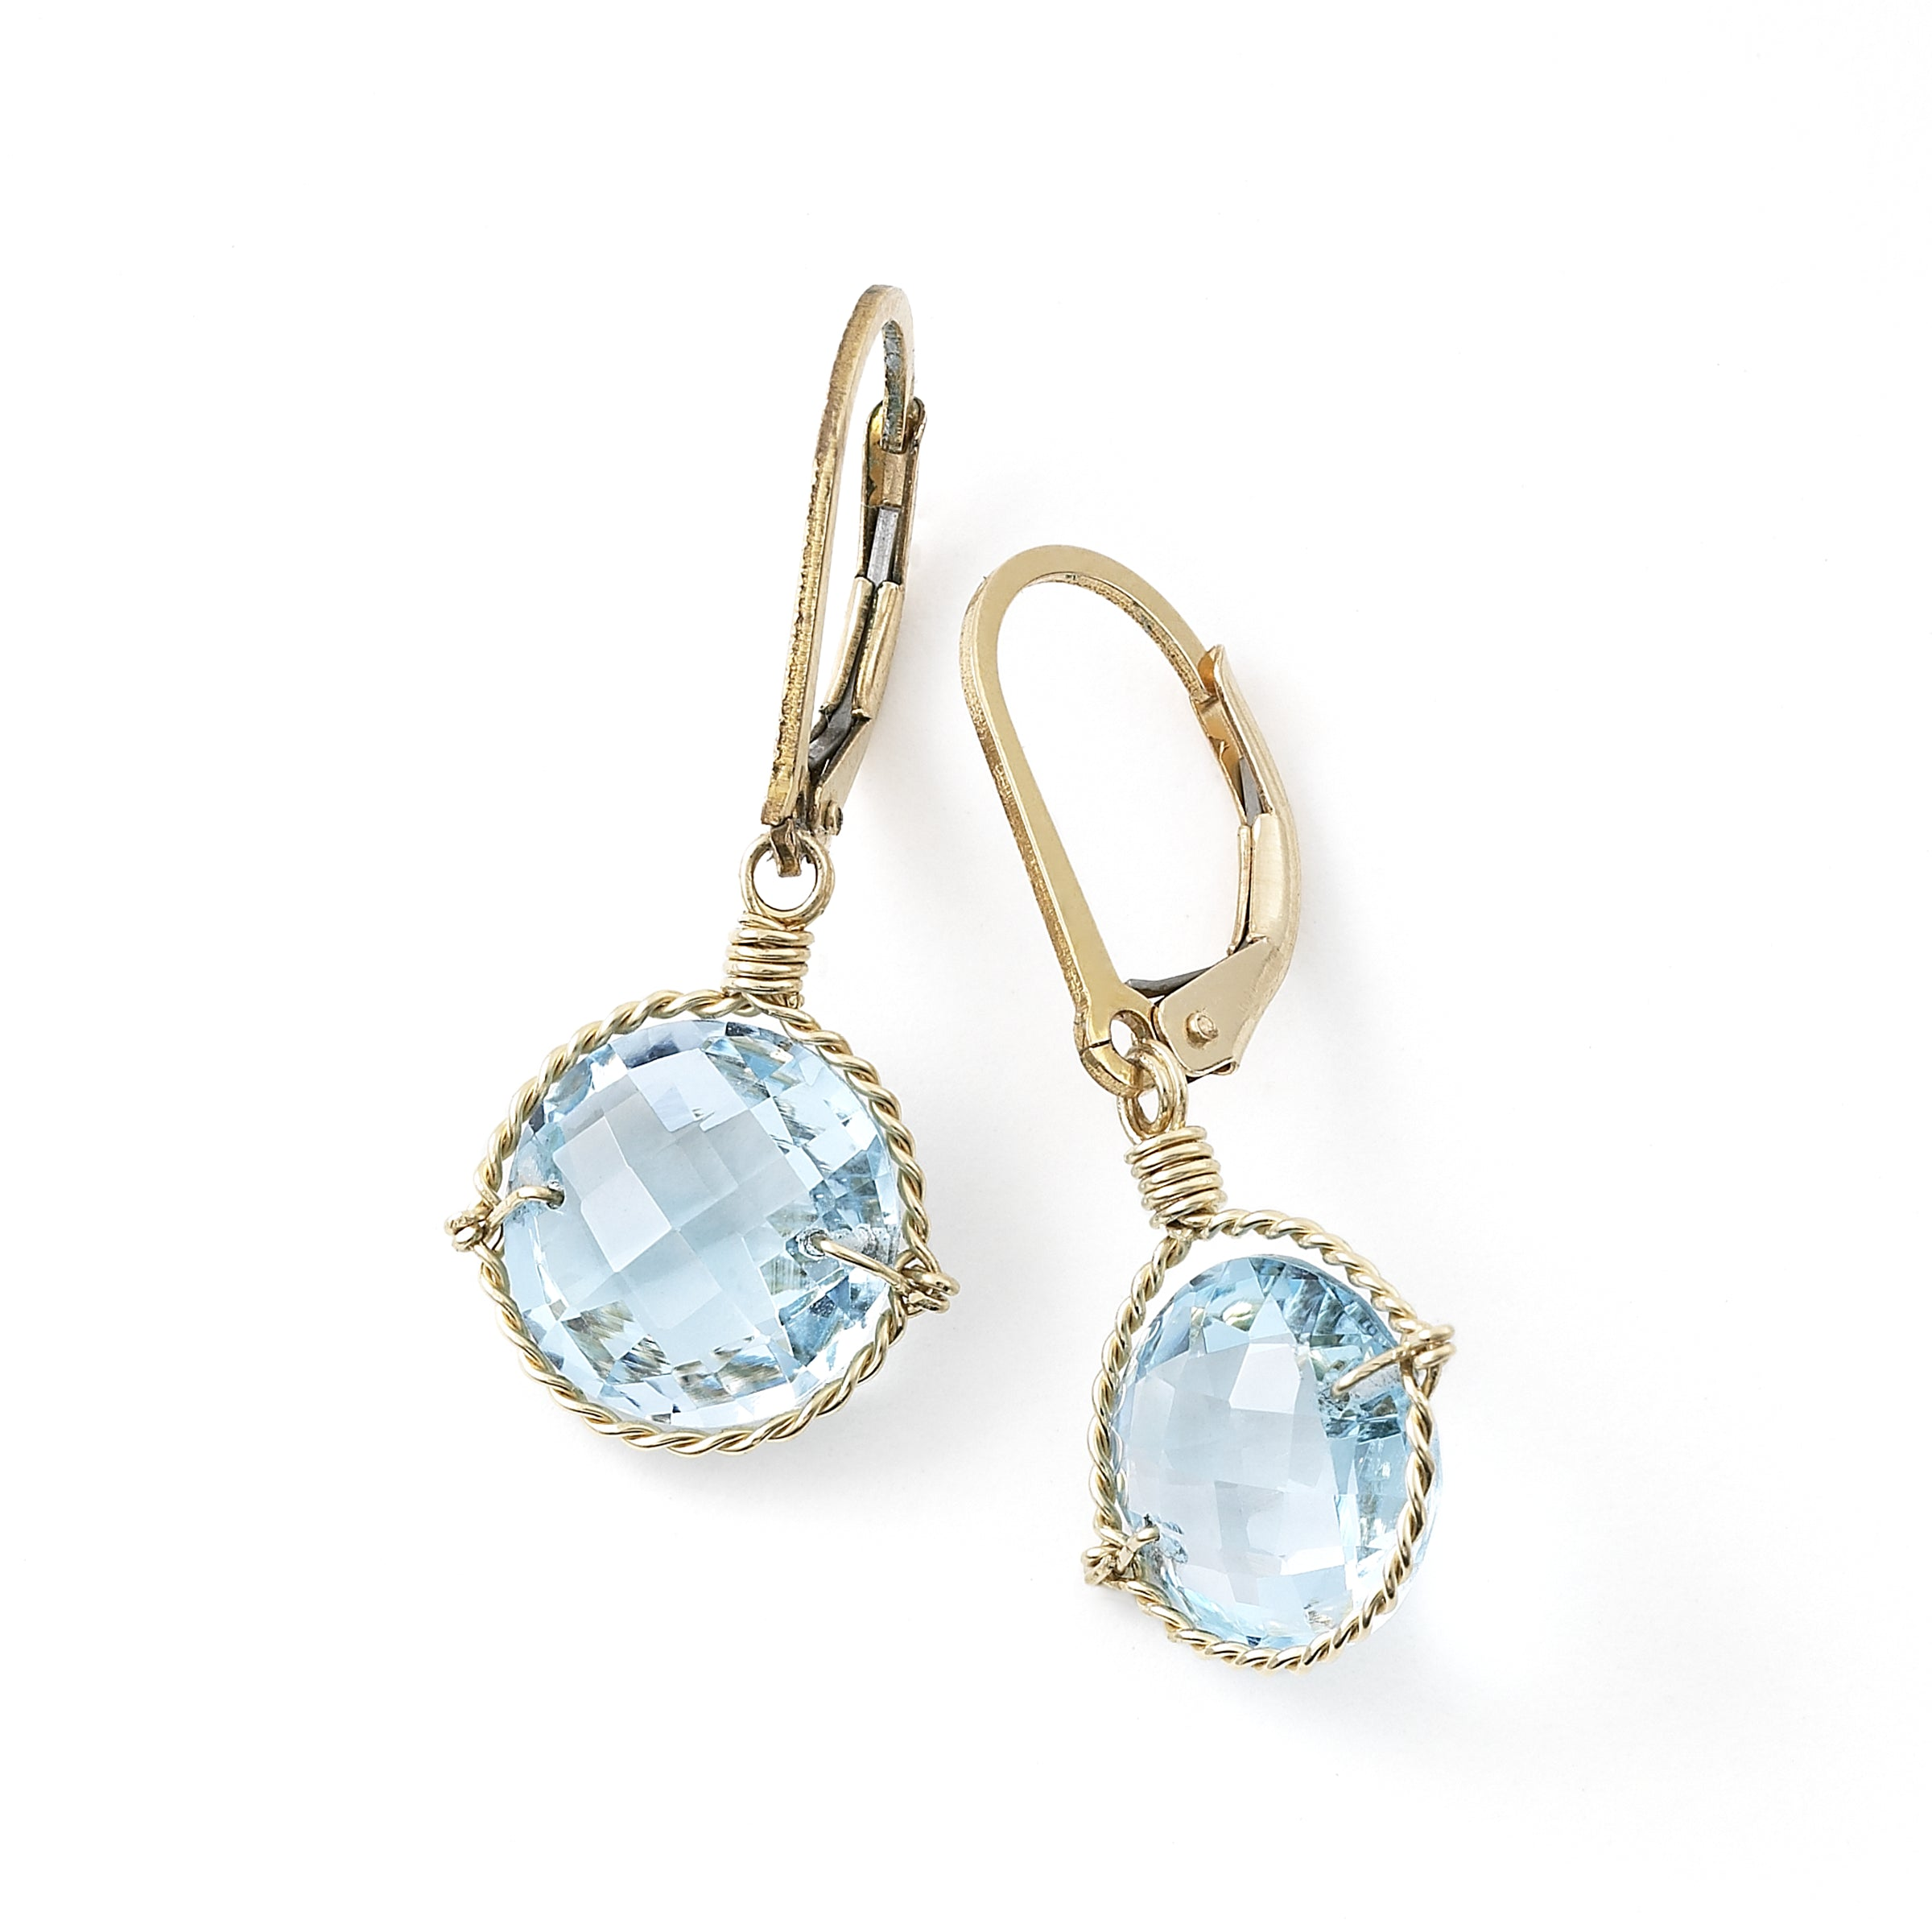 Blue Topaz Drop Earrings, 14K Gold-Filled Wire, by Misha of NY